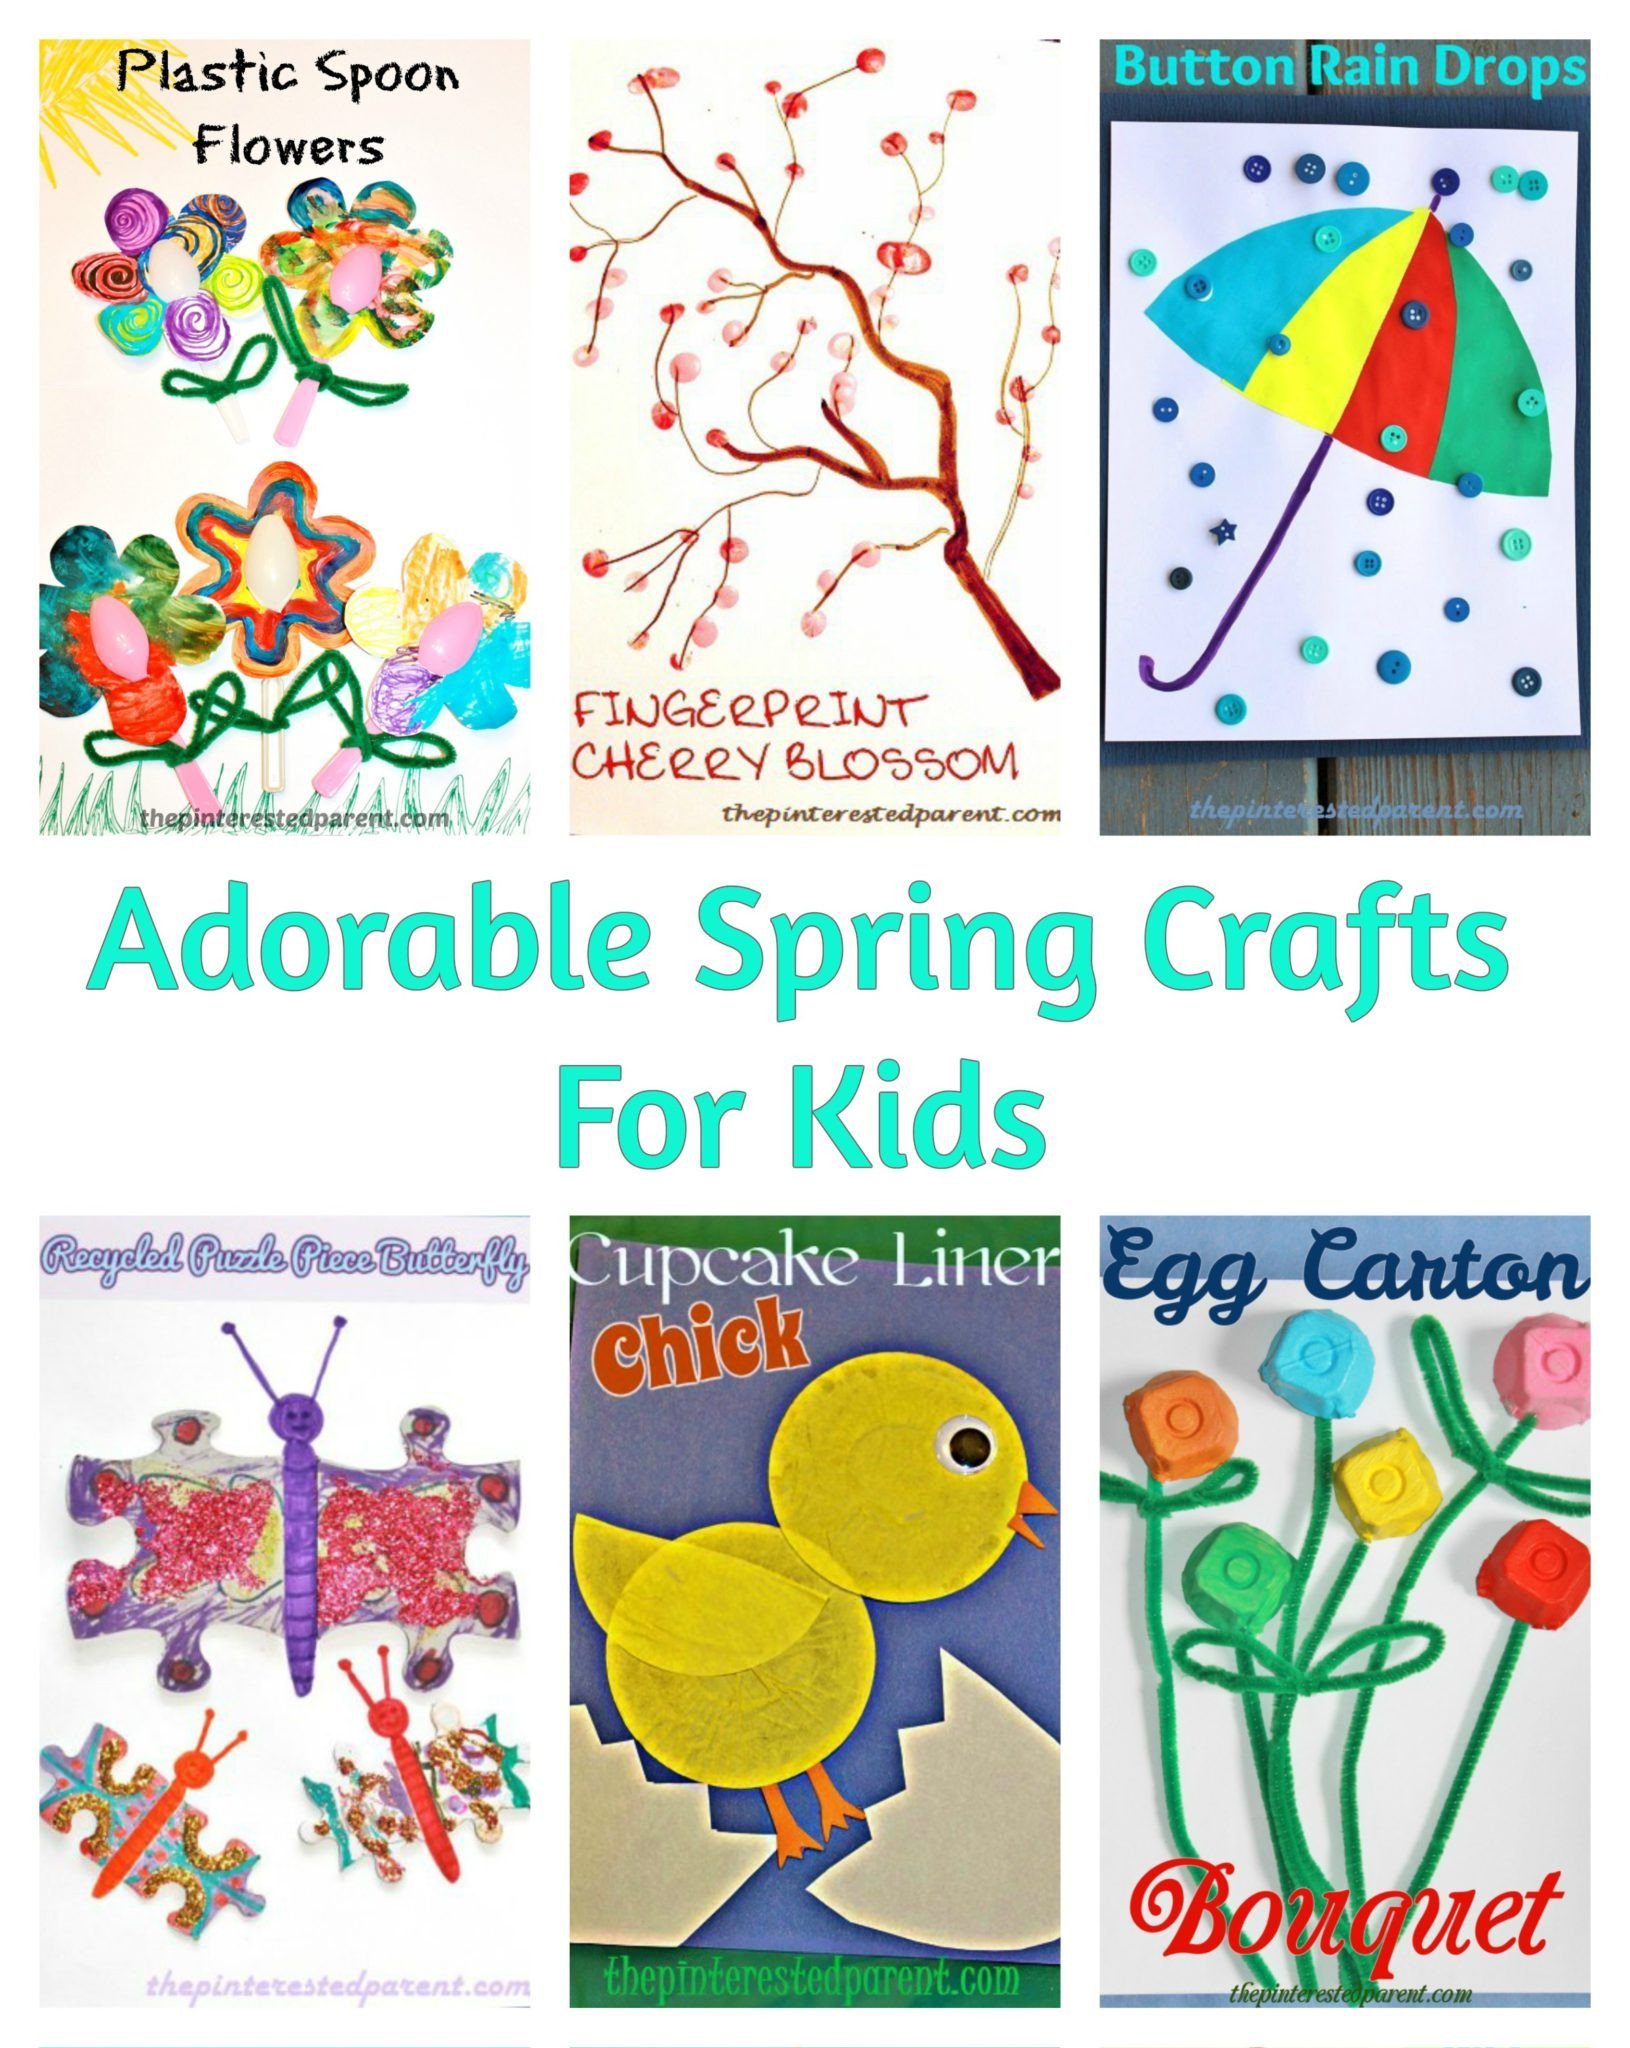 Best ideas about Easy Spring Crafts For Kids . Save or Pin Cute & Simple Spring Crafts For Kids – The Pinterested Parent Now.